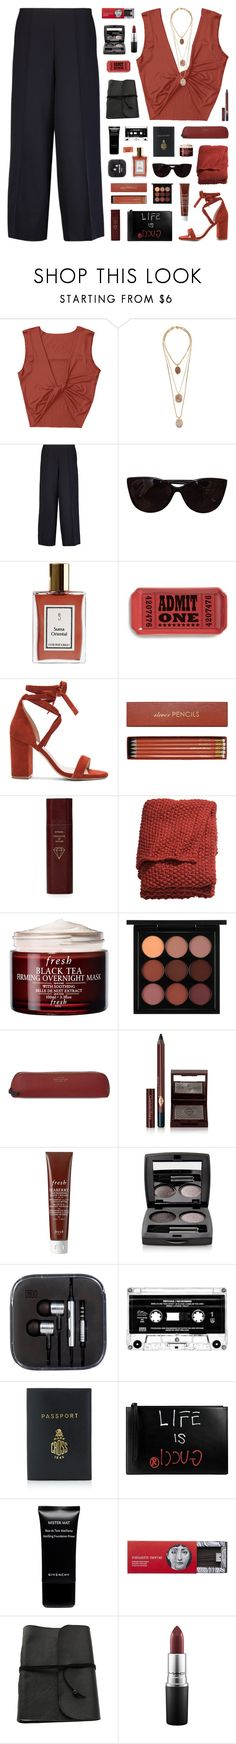 """heartless"" by martosaur ❤ liked on Polyvore featuring Rosantica, Lanvin, Tiffany & Co., Fishs Eddy, Raye, Sloane Stationery, Byredo, H&M, Fresh and MAC Cosmetics"